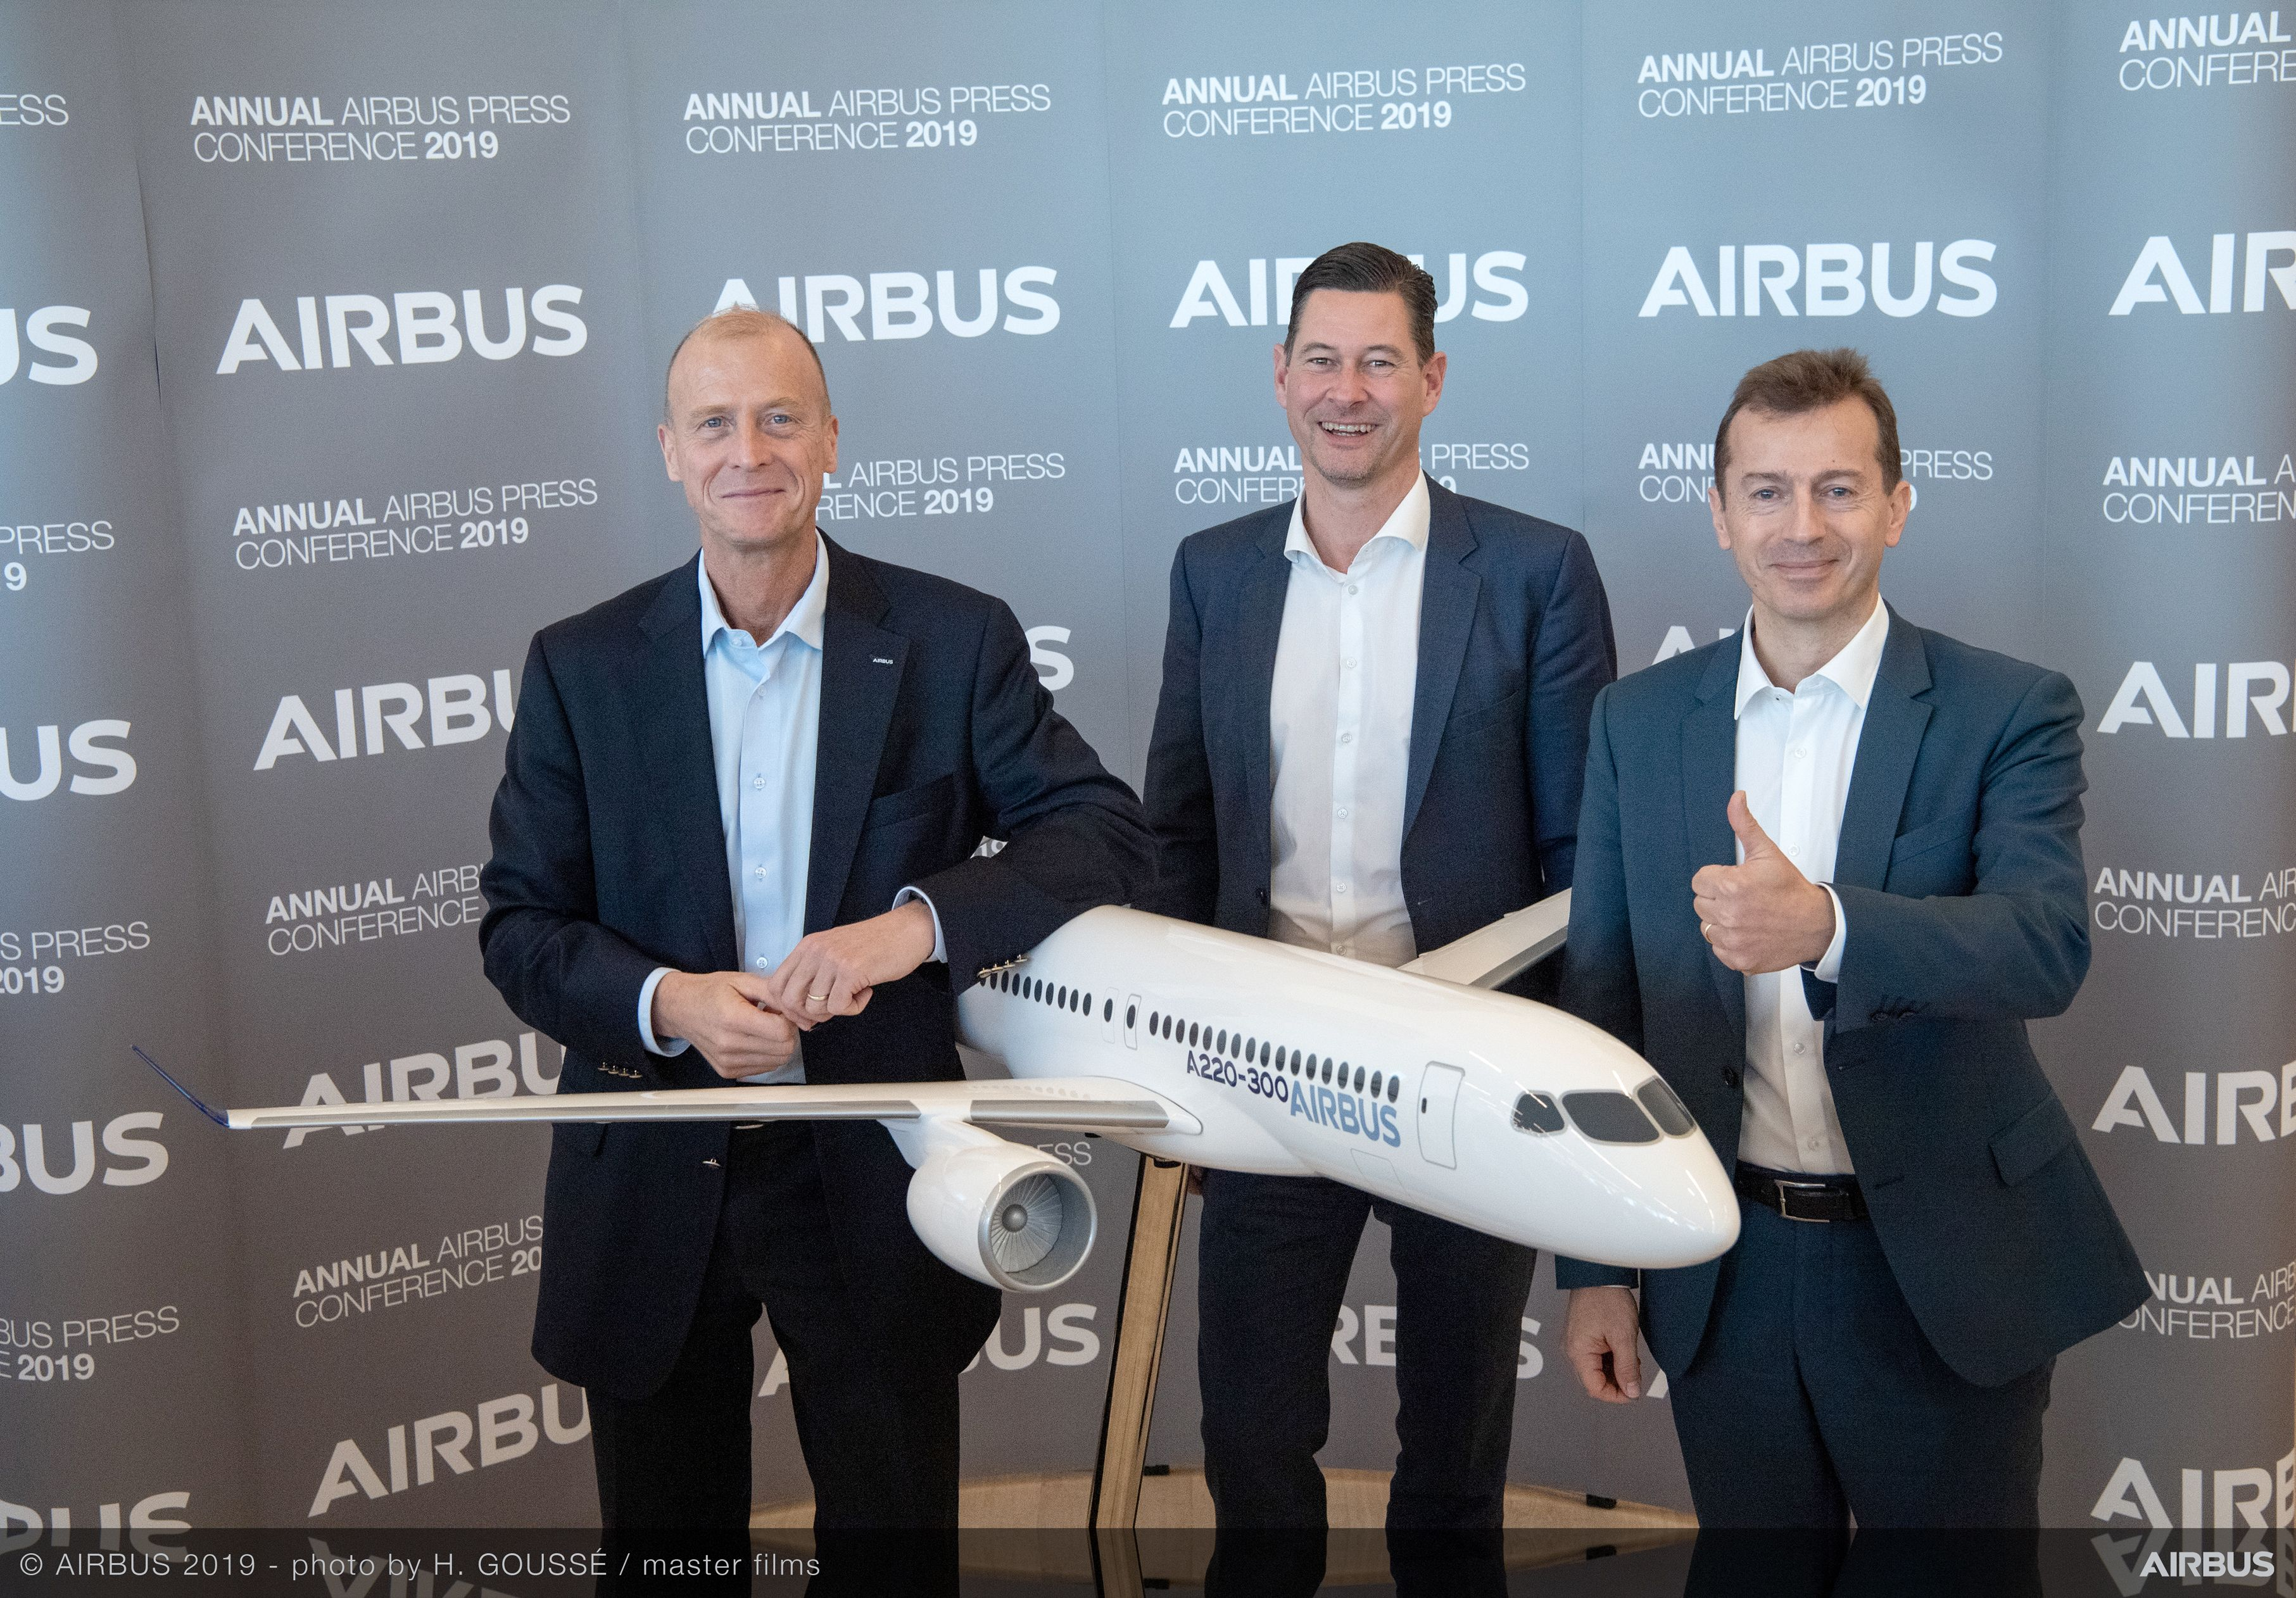 Airbus Reports Strong Full Year 2018 Results Delivers On Guidance Company Airbus